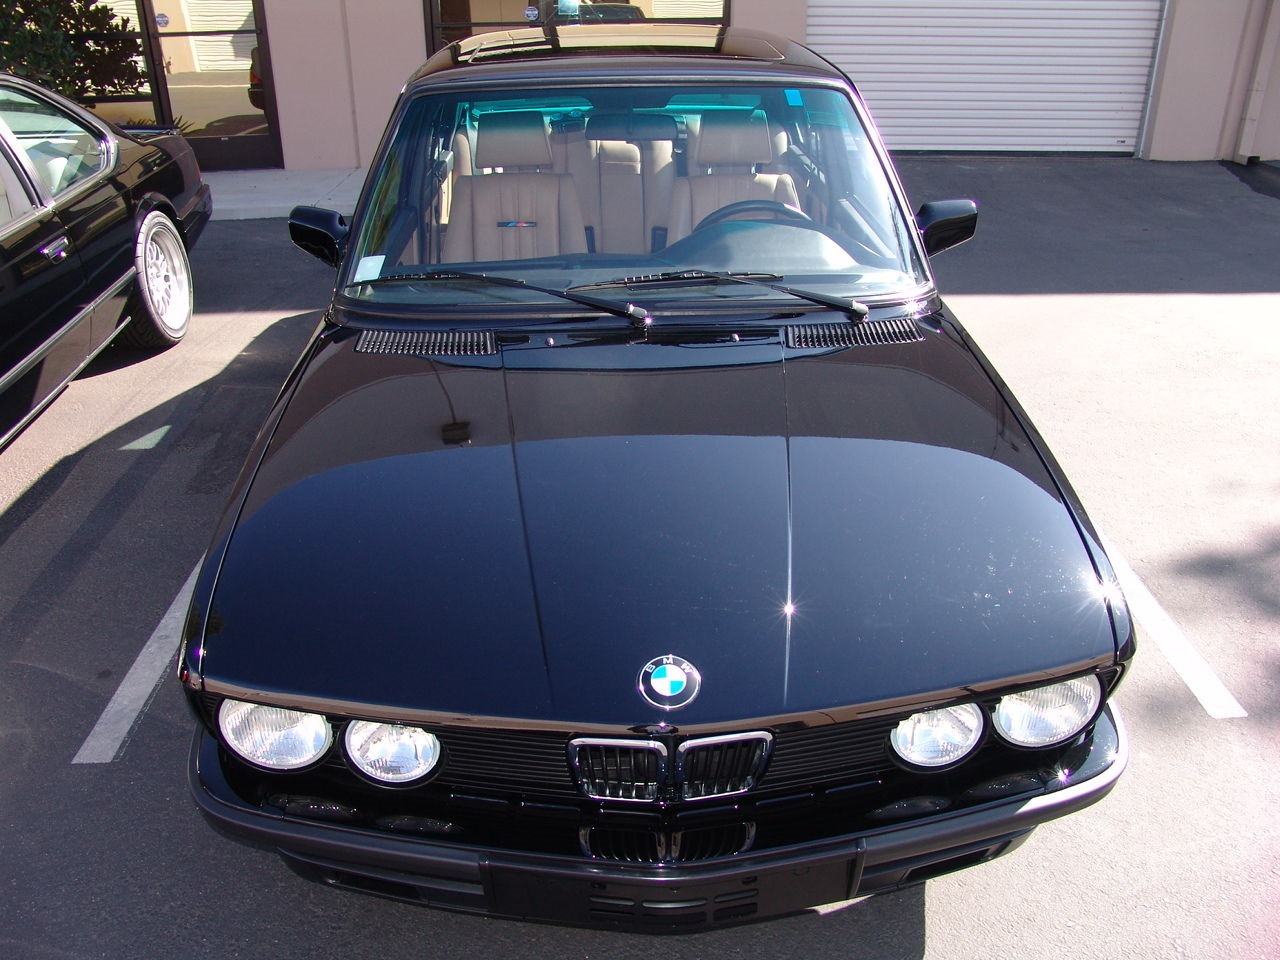 Low Mileage 1988 BMW M5 Previously Owned by Frank Gerber ...